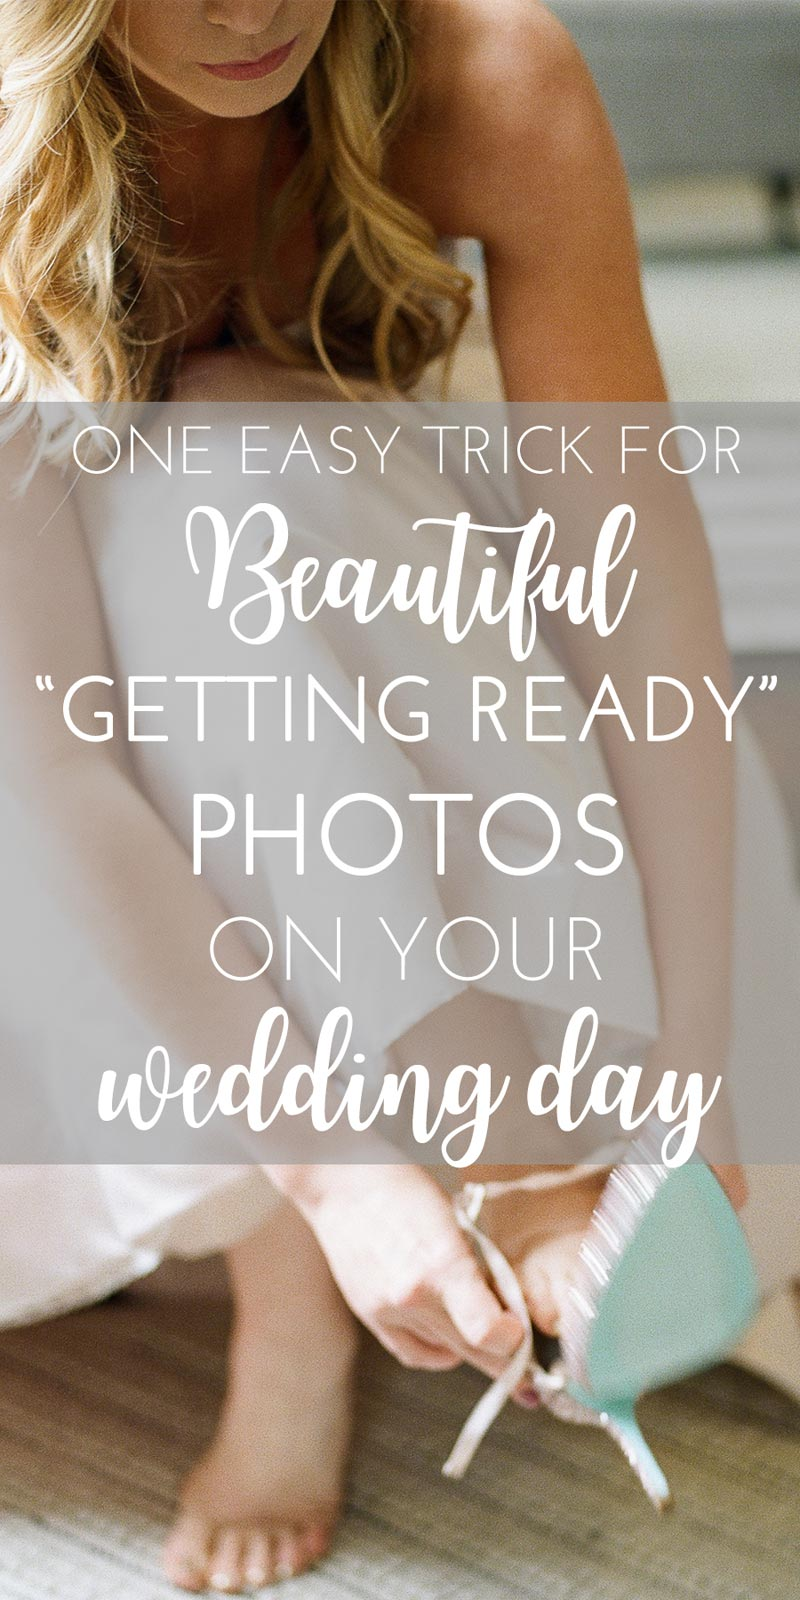 one easy trick for getting ready photos